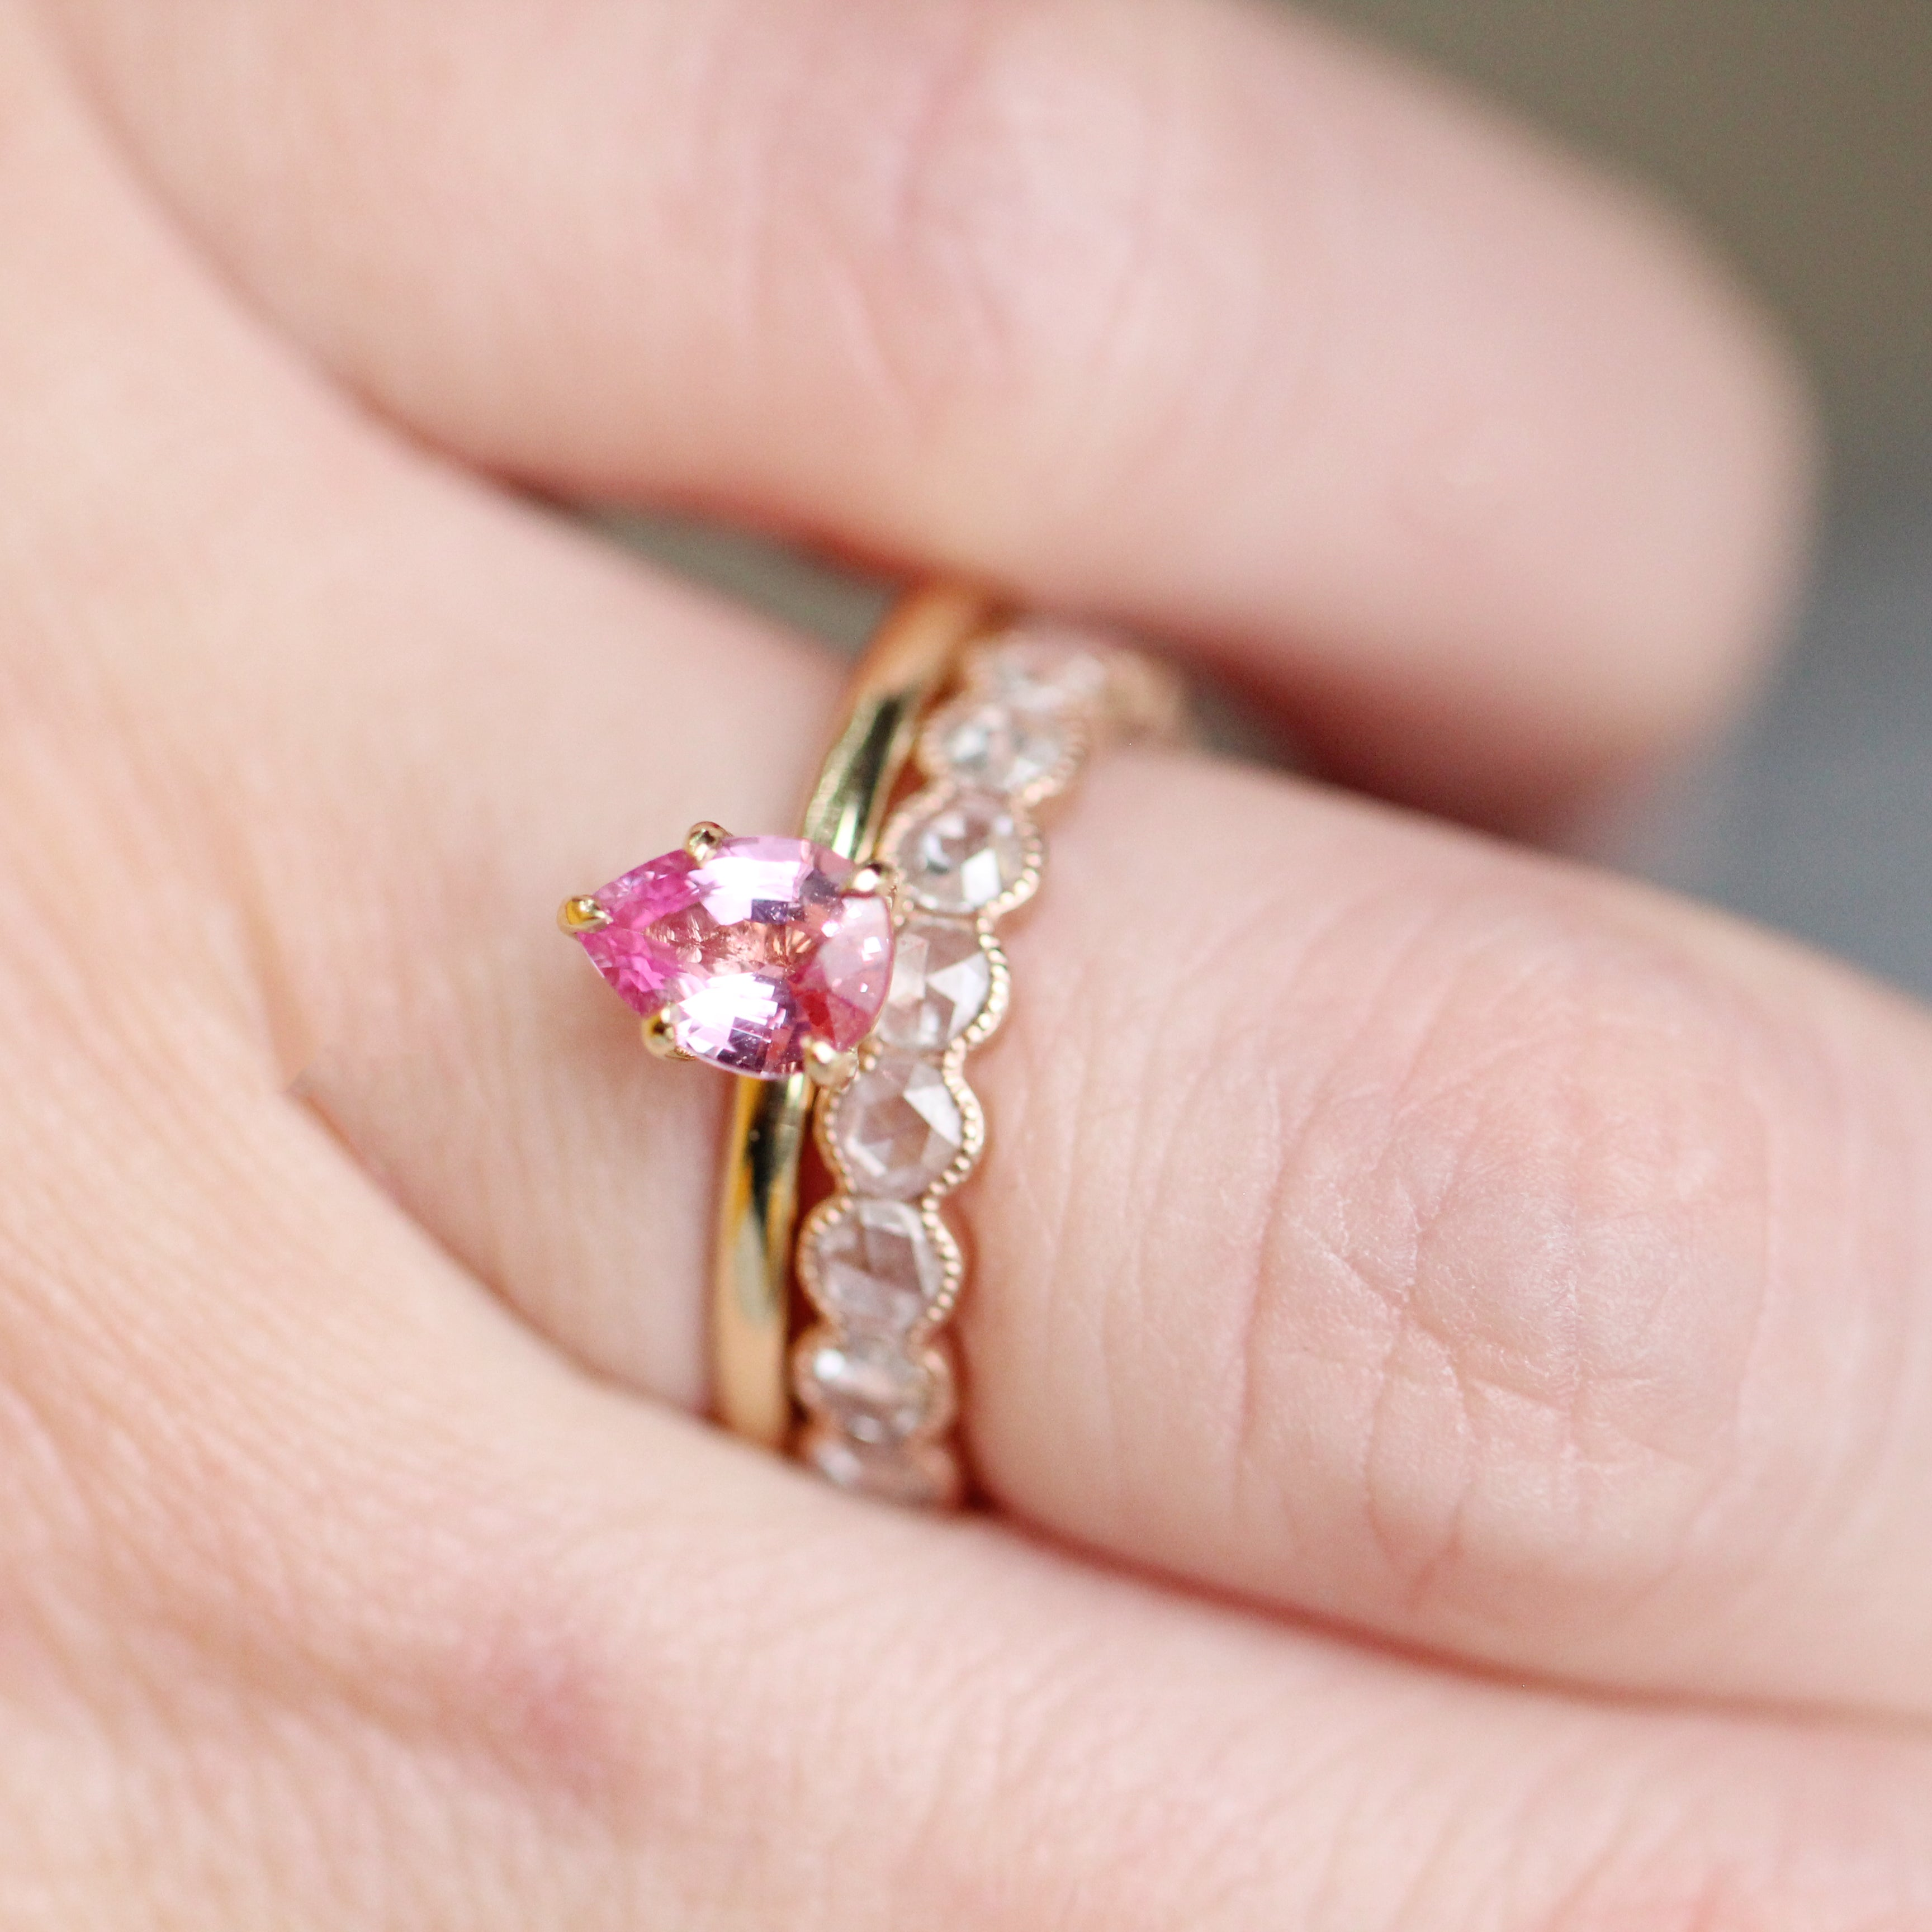 Charlotte Ring with a .85 ct pink Sapphire in 14k Yellow Gold - Ready to Size and Ship - Salt & Pepper Celestial Diamond Engagement Rings and Wedding Bands  by Midwinter Co.